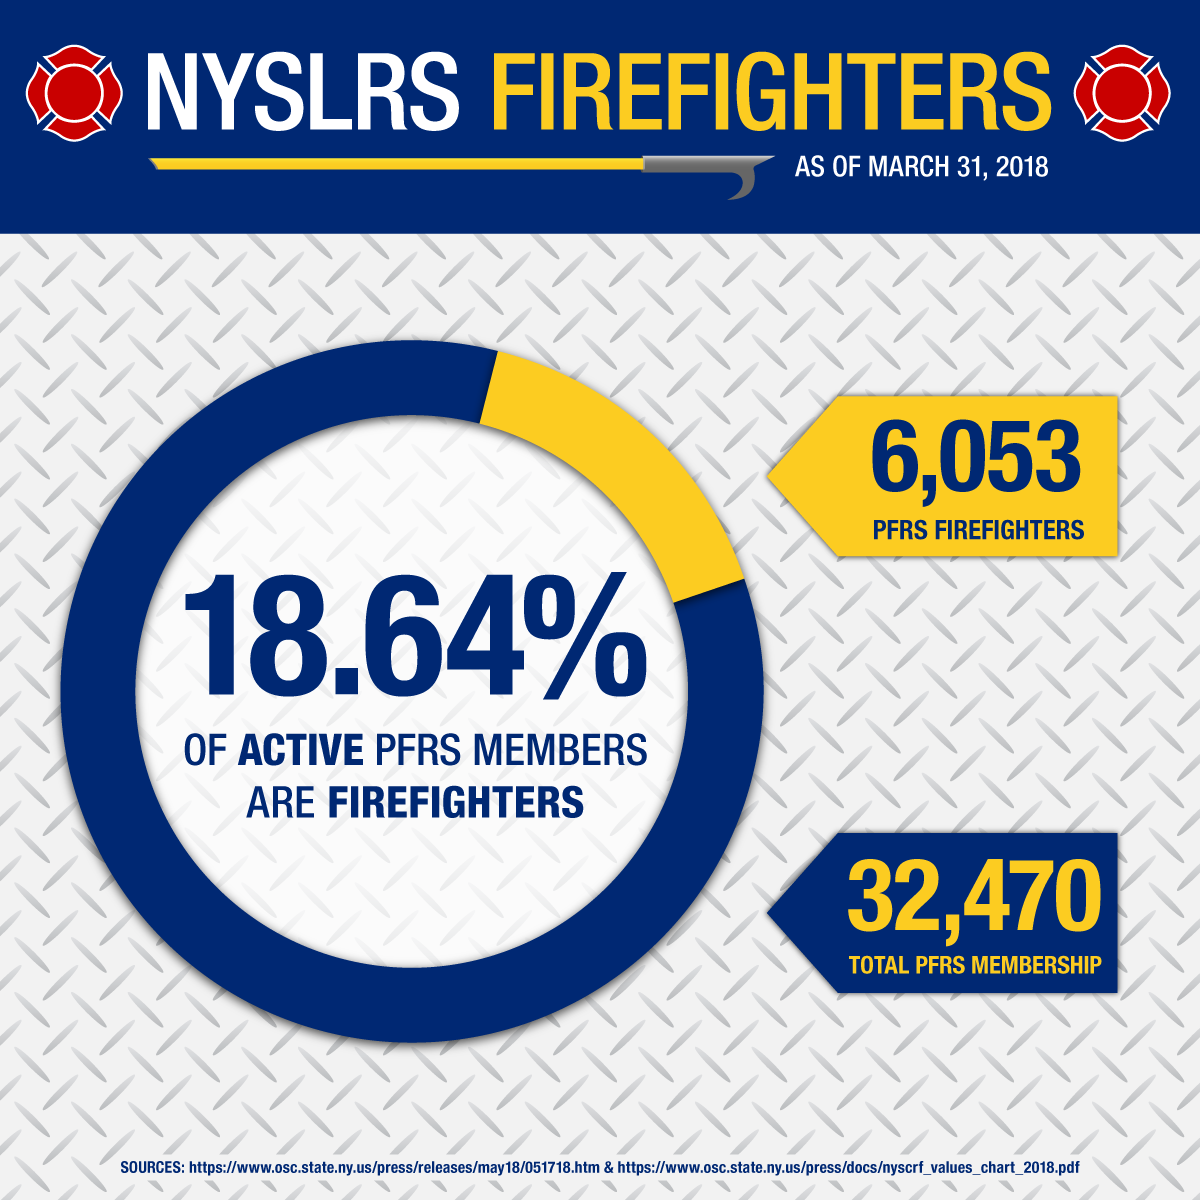 NYSLRS Firefighters data